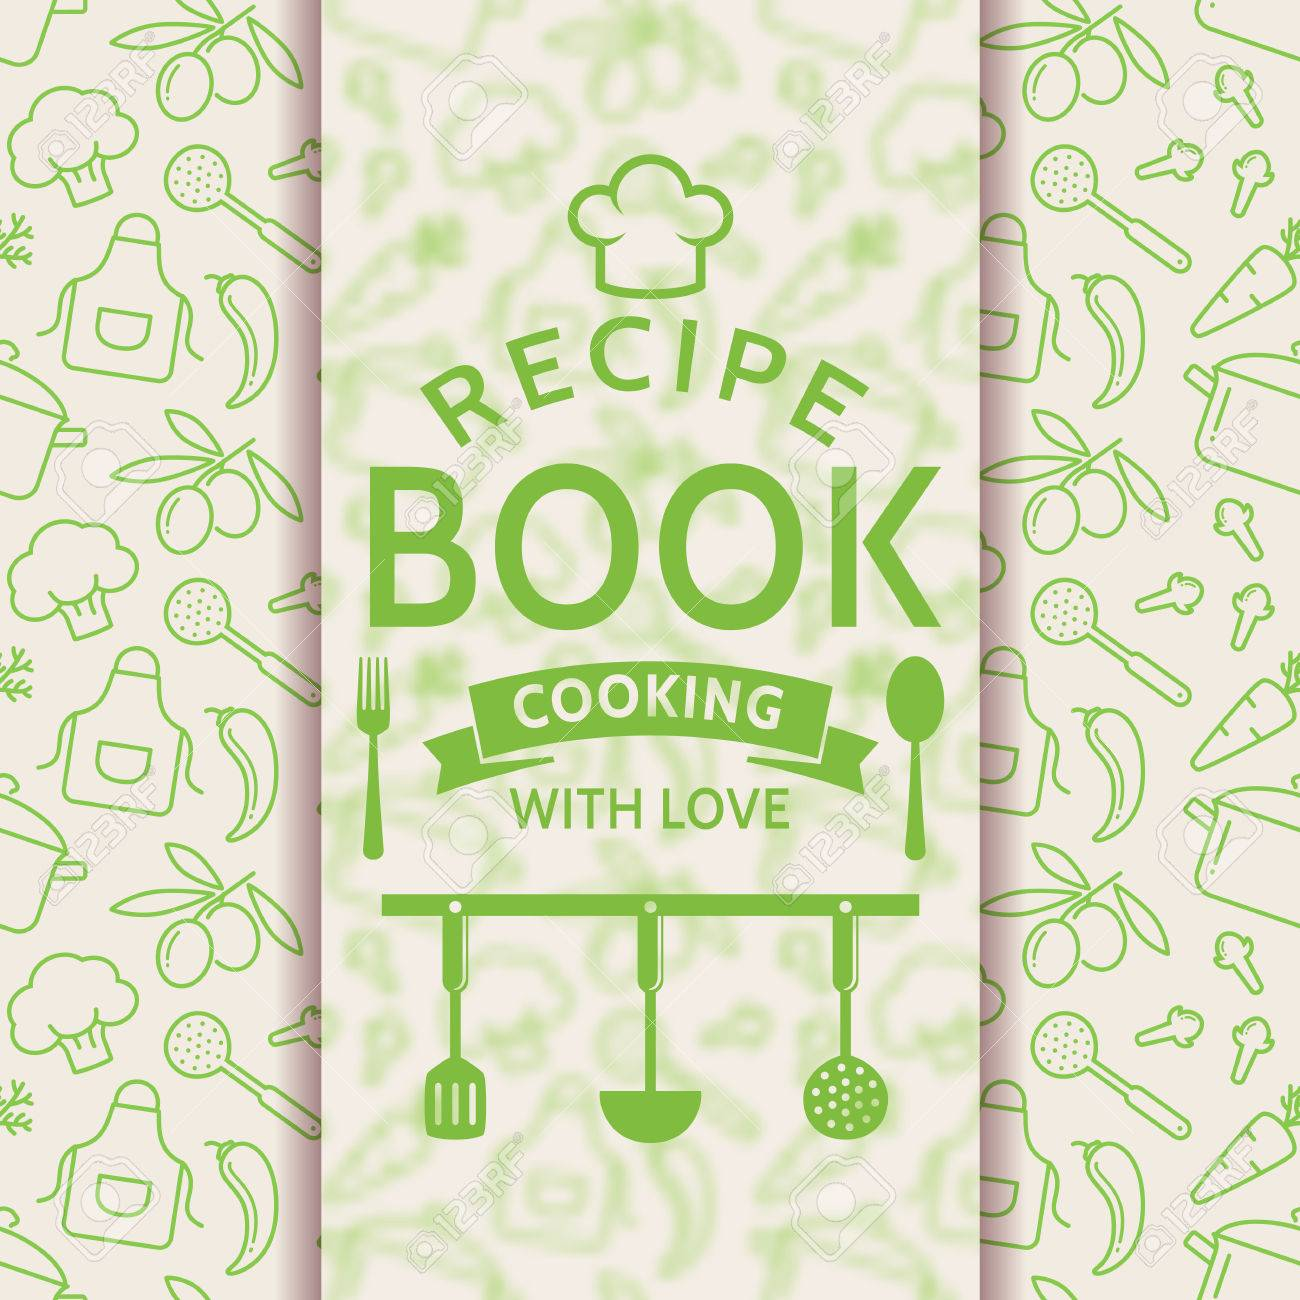 Recipe Book Cooking With Love Card Outline Culinary Symbols And Typographic Badge